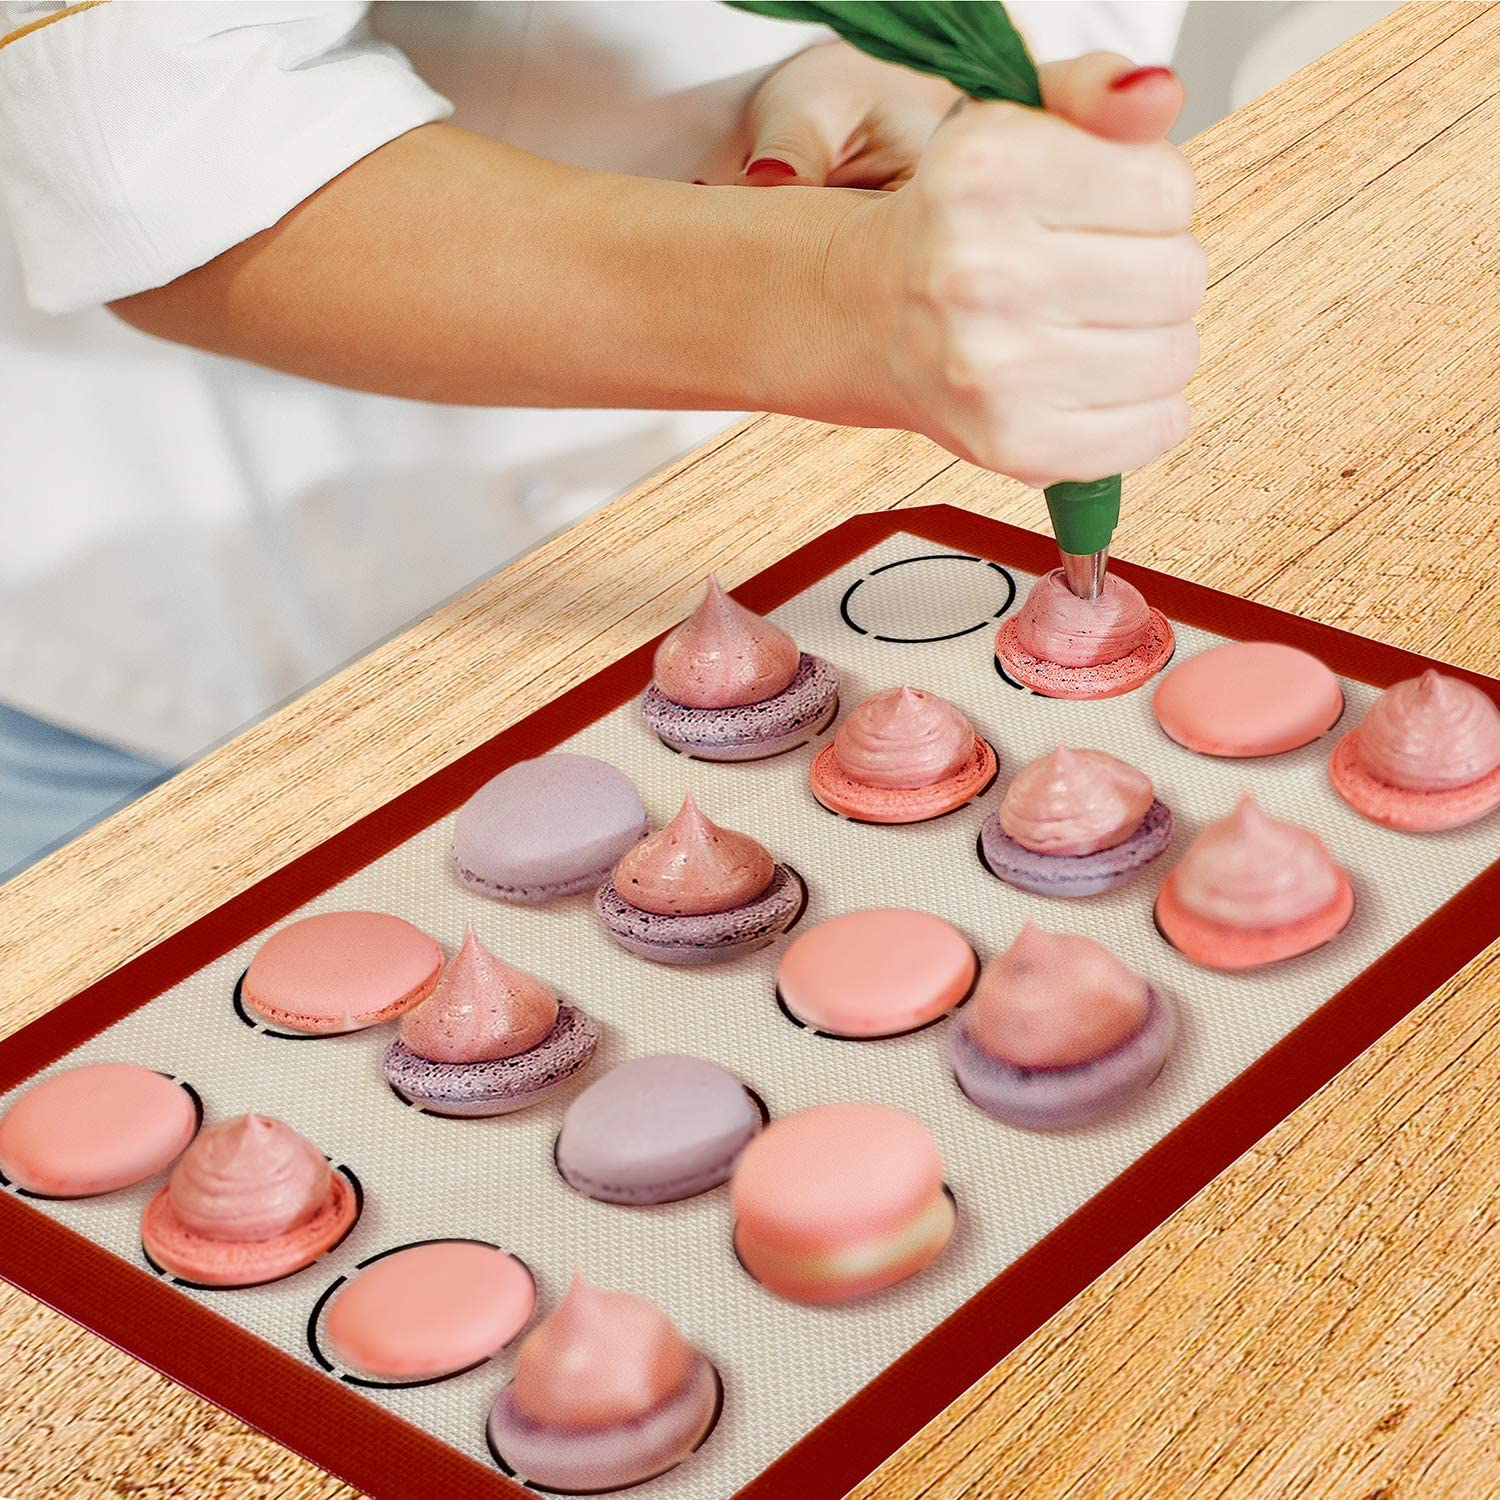 KingChef™ Silicone Cookie Baking Mat [BUY 1 GET 1 FREE]